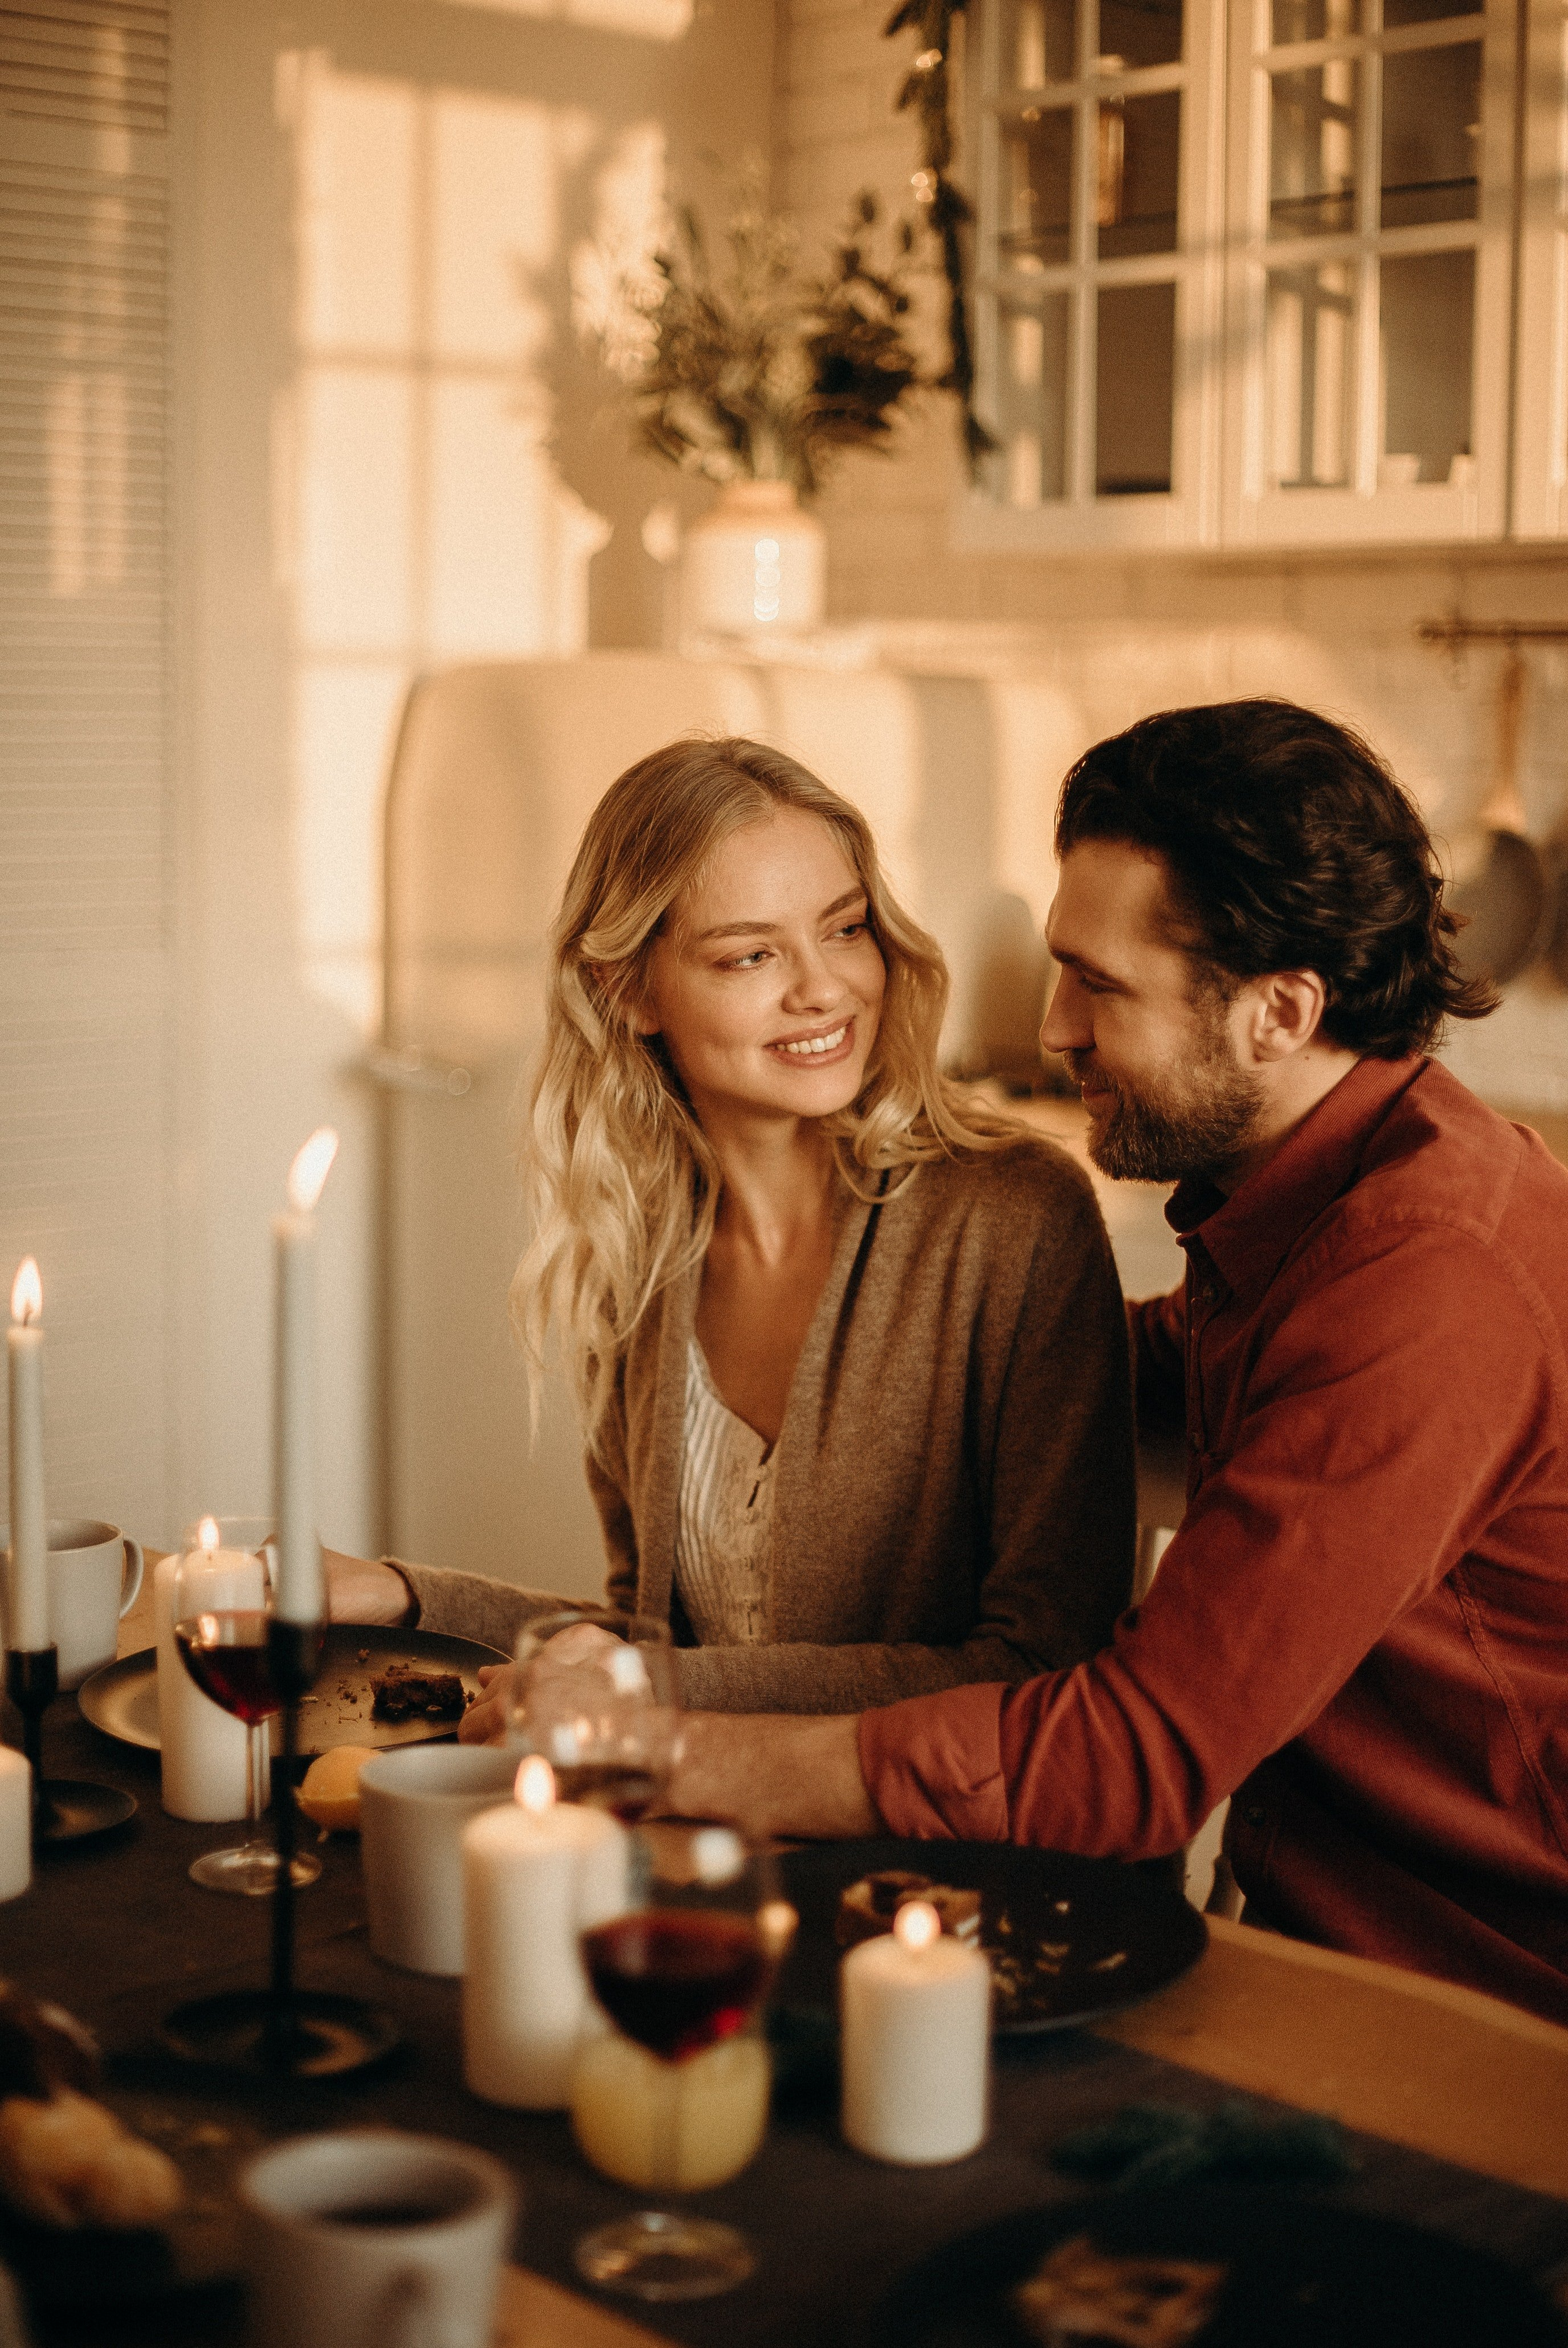 The couple celebrated their anniversary with a romantic dinner.   Photo: Pexels/cottonbro